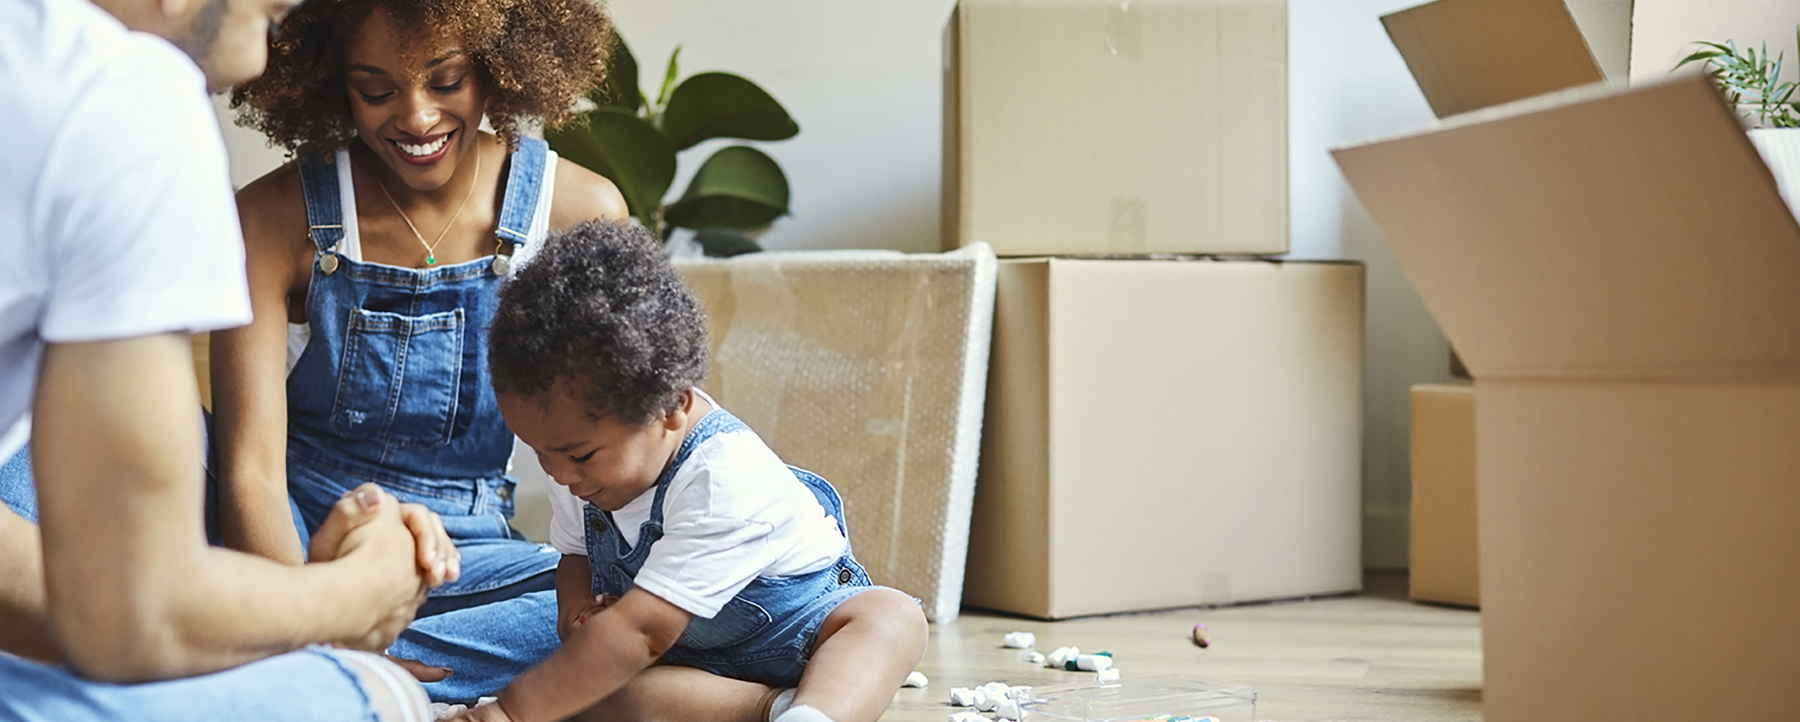 Father and mother with baby in living room unpacking boxes